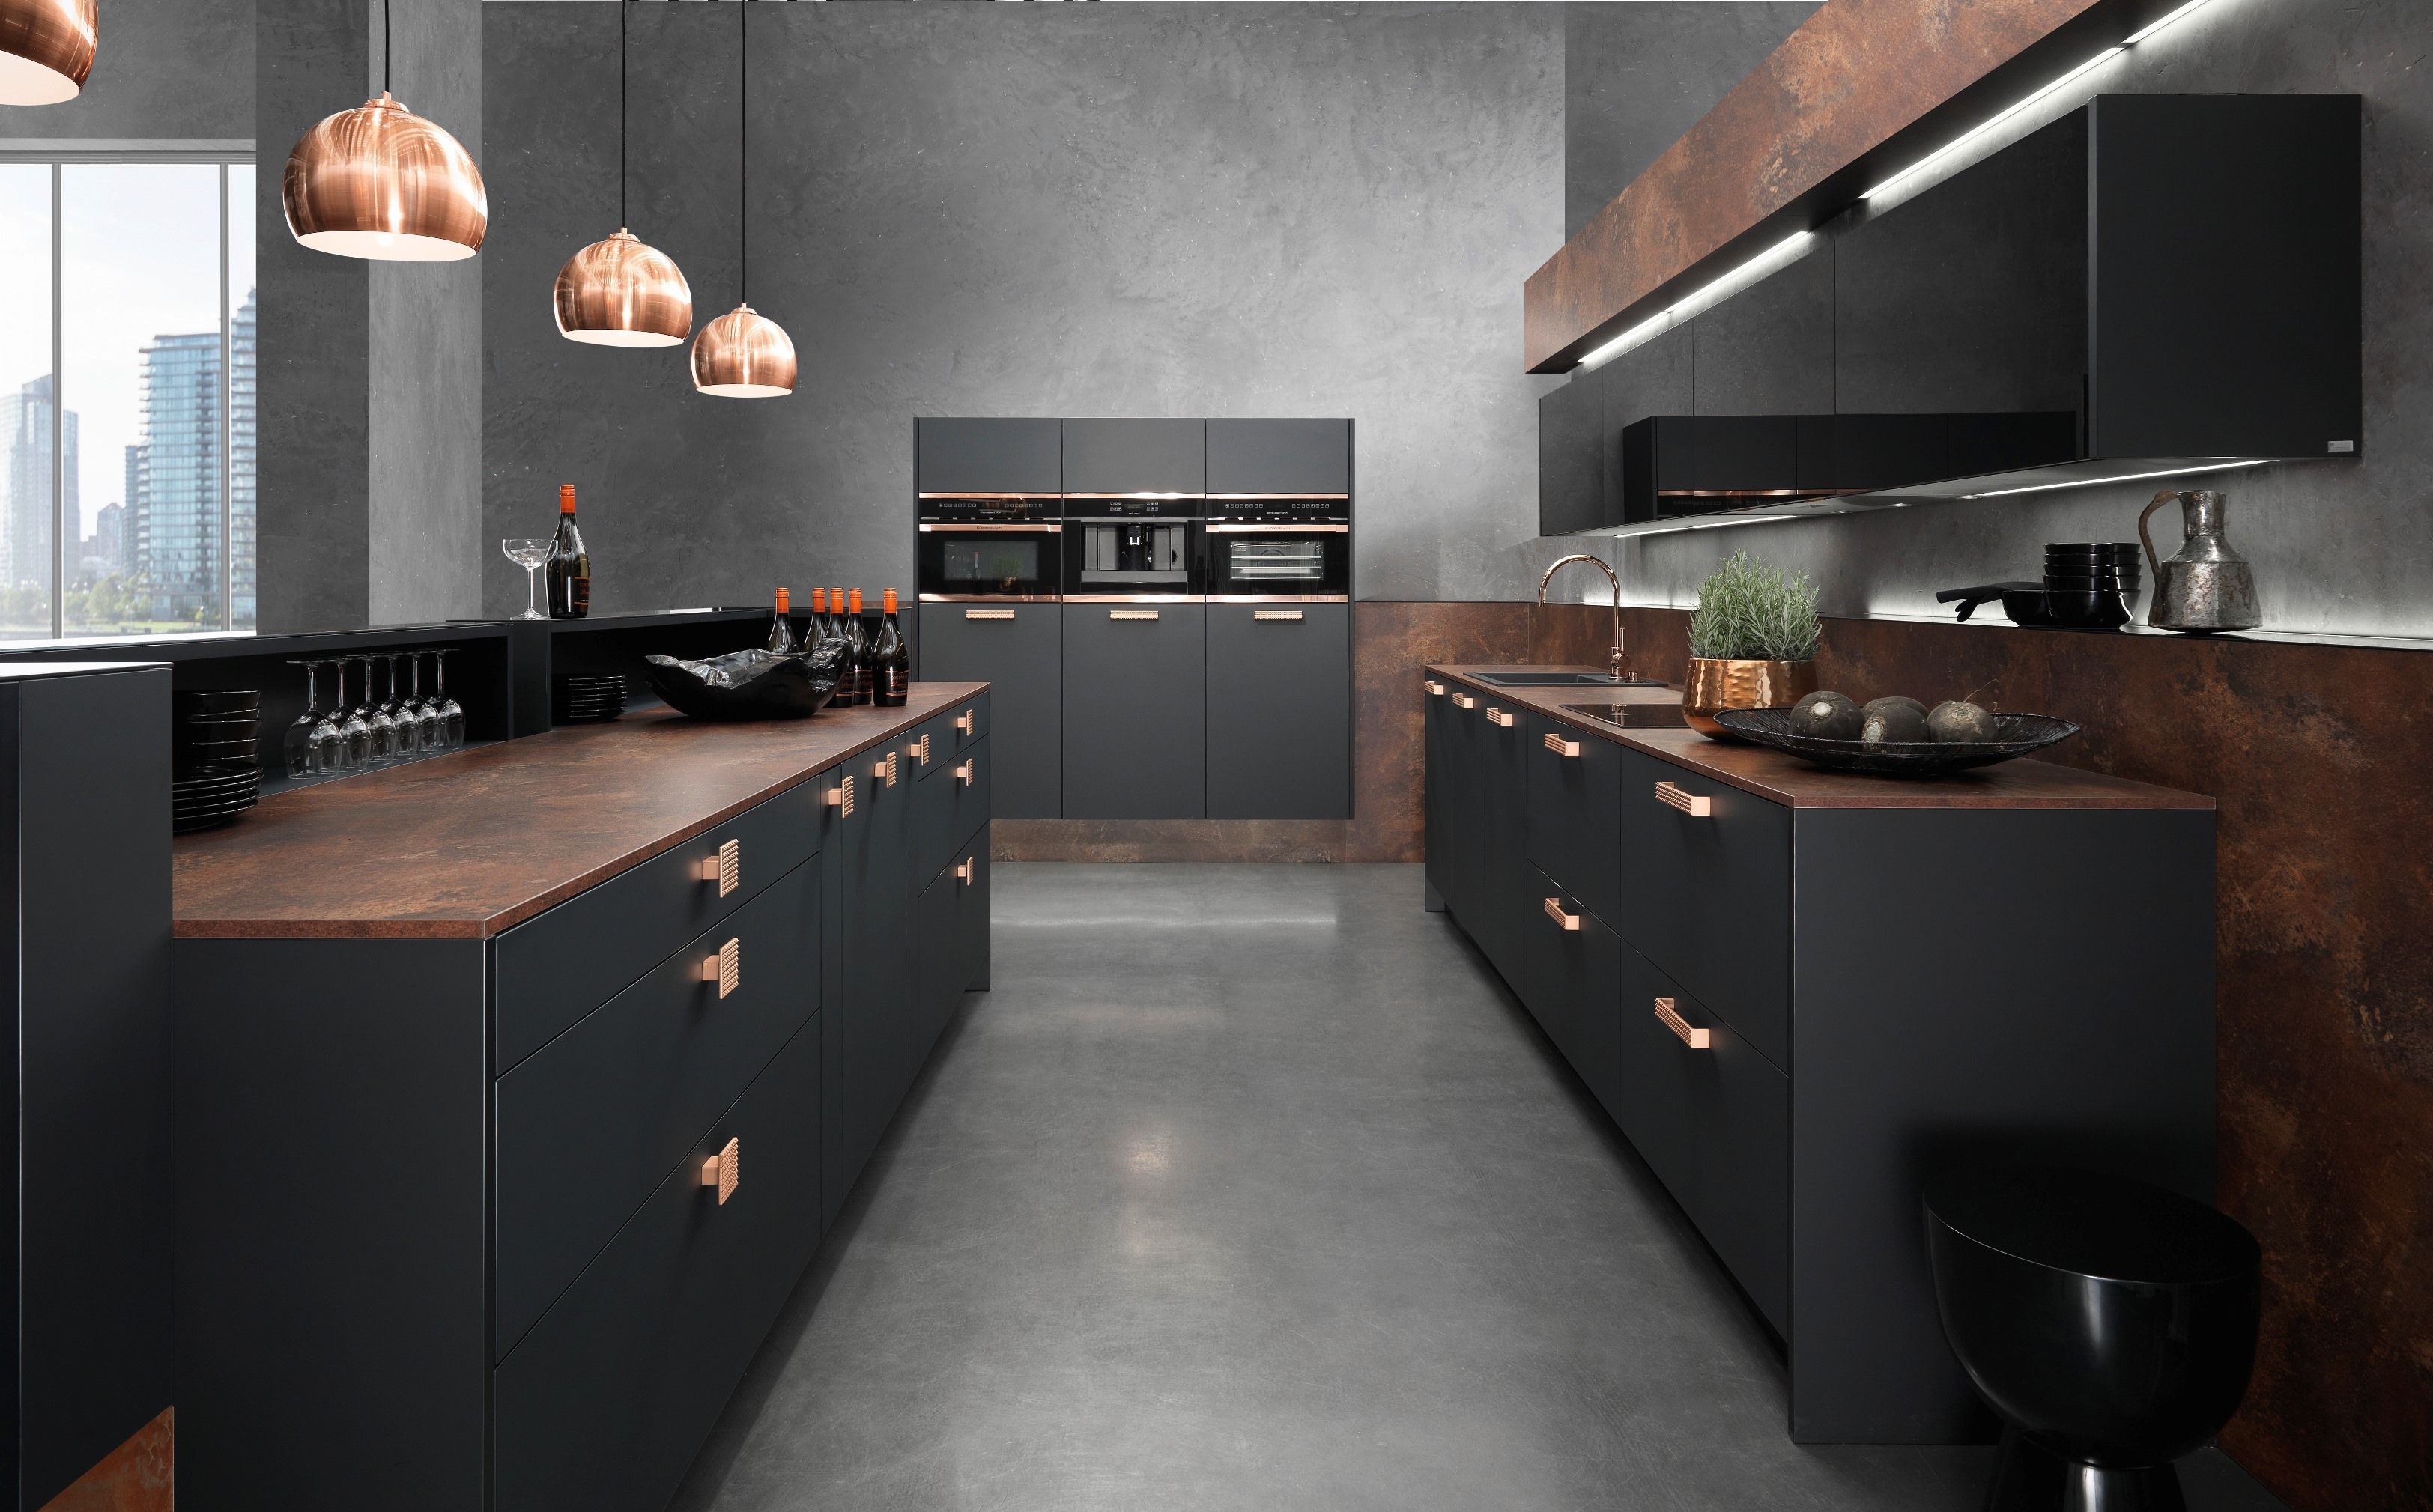 20 Dark Kitchen Ideas For Every Kitchen Size